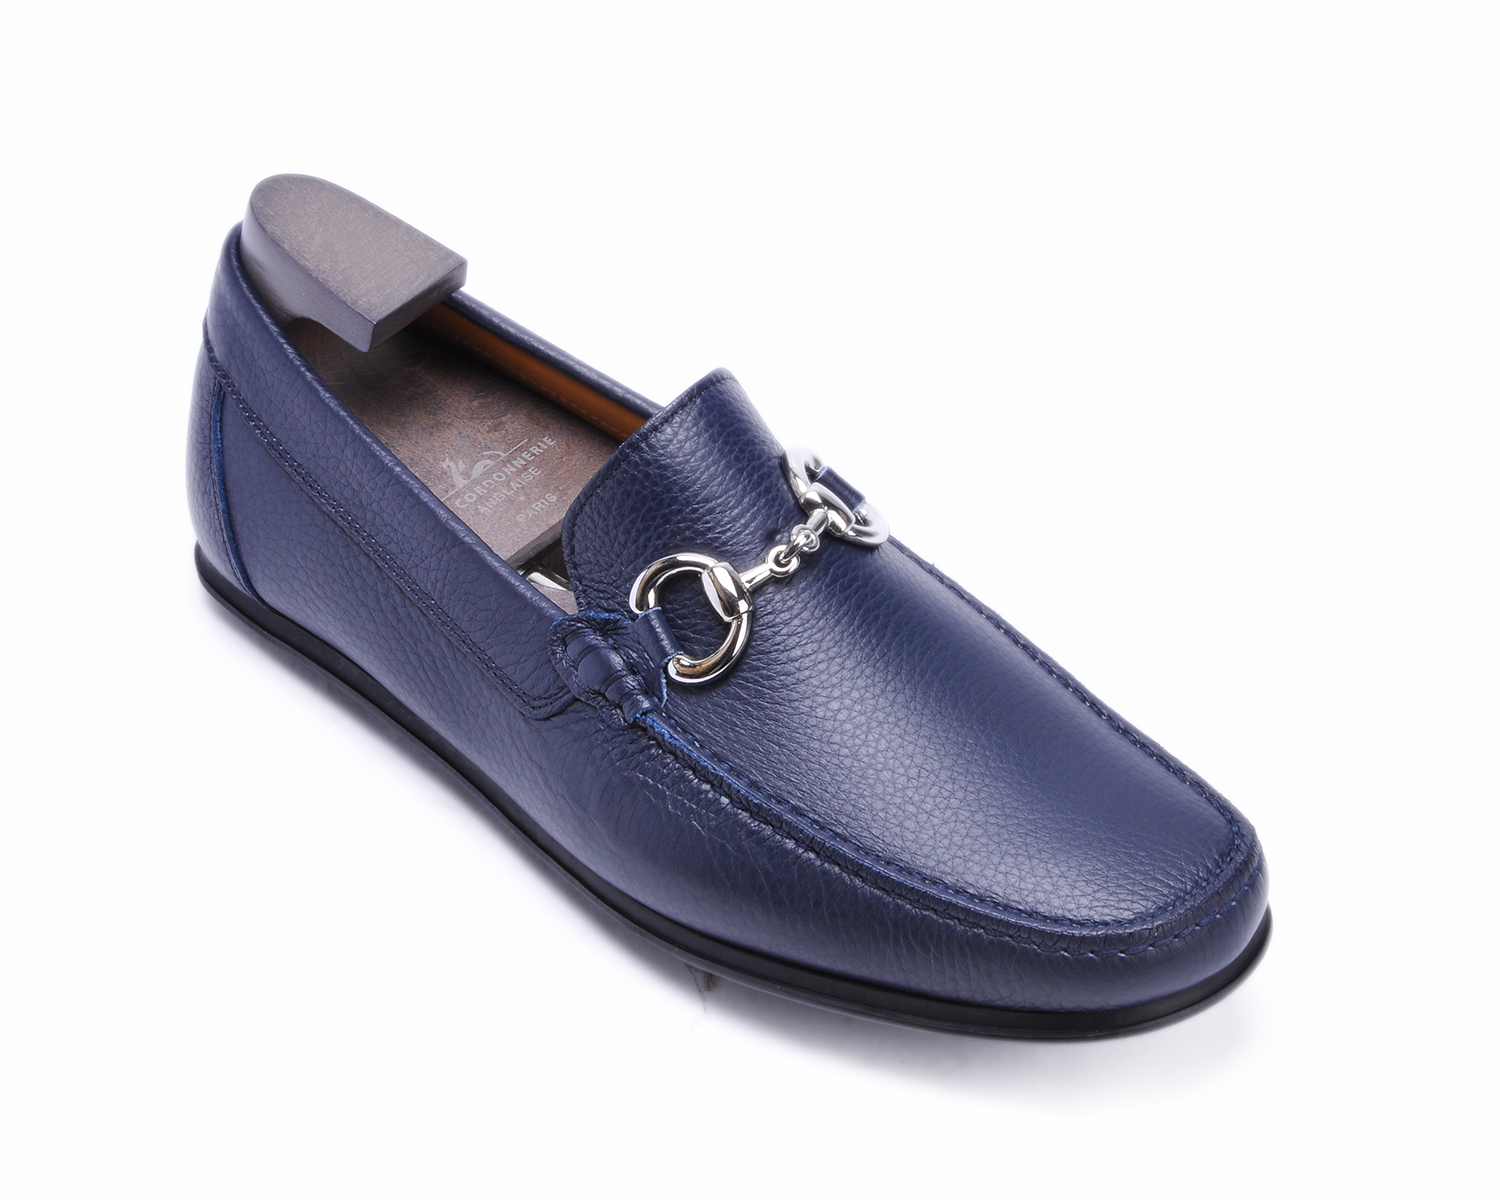 Giày moccasin Italy Gianni Conti SP9640GG